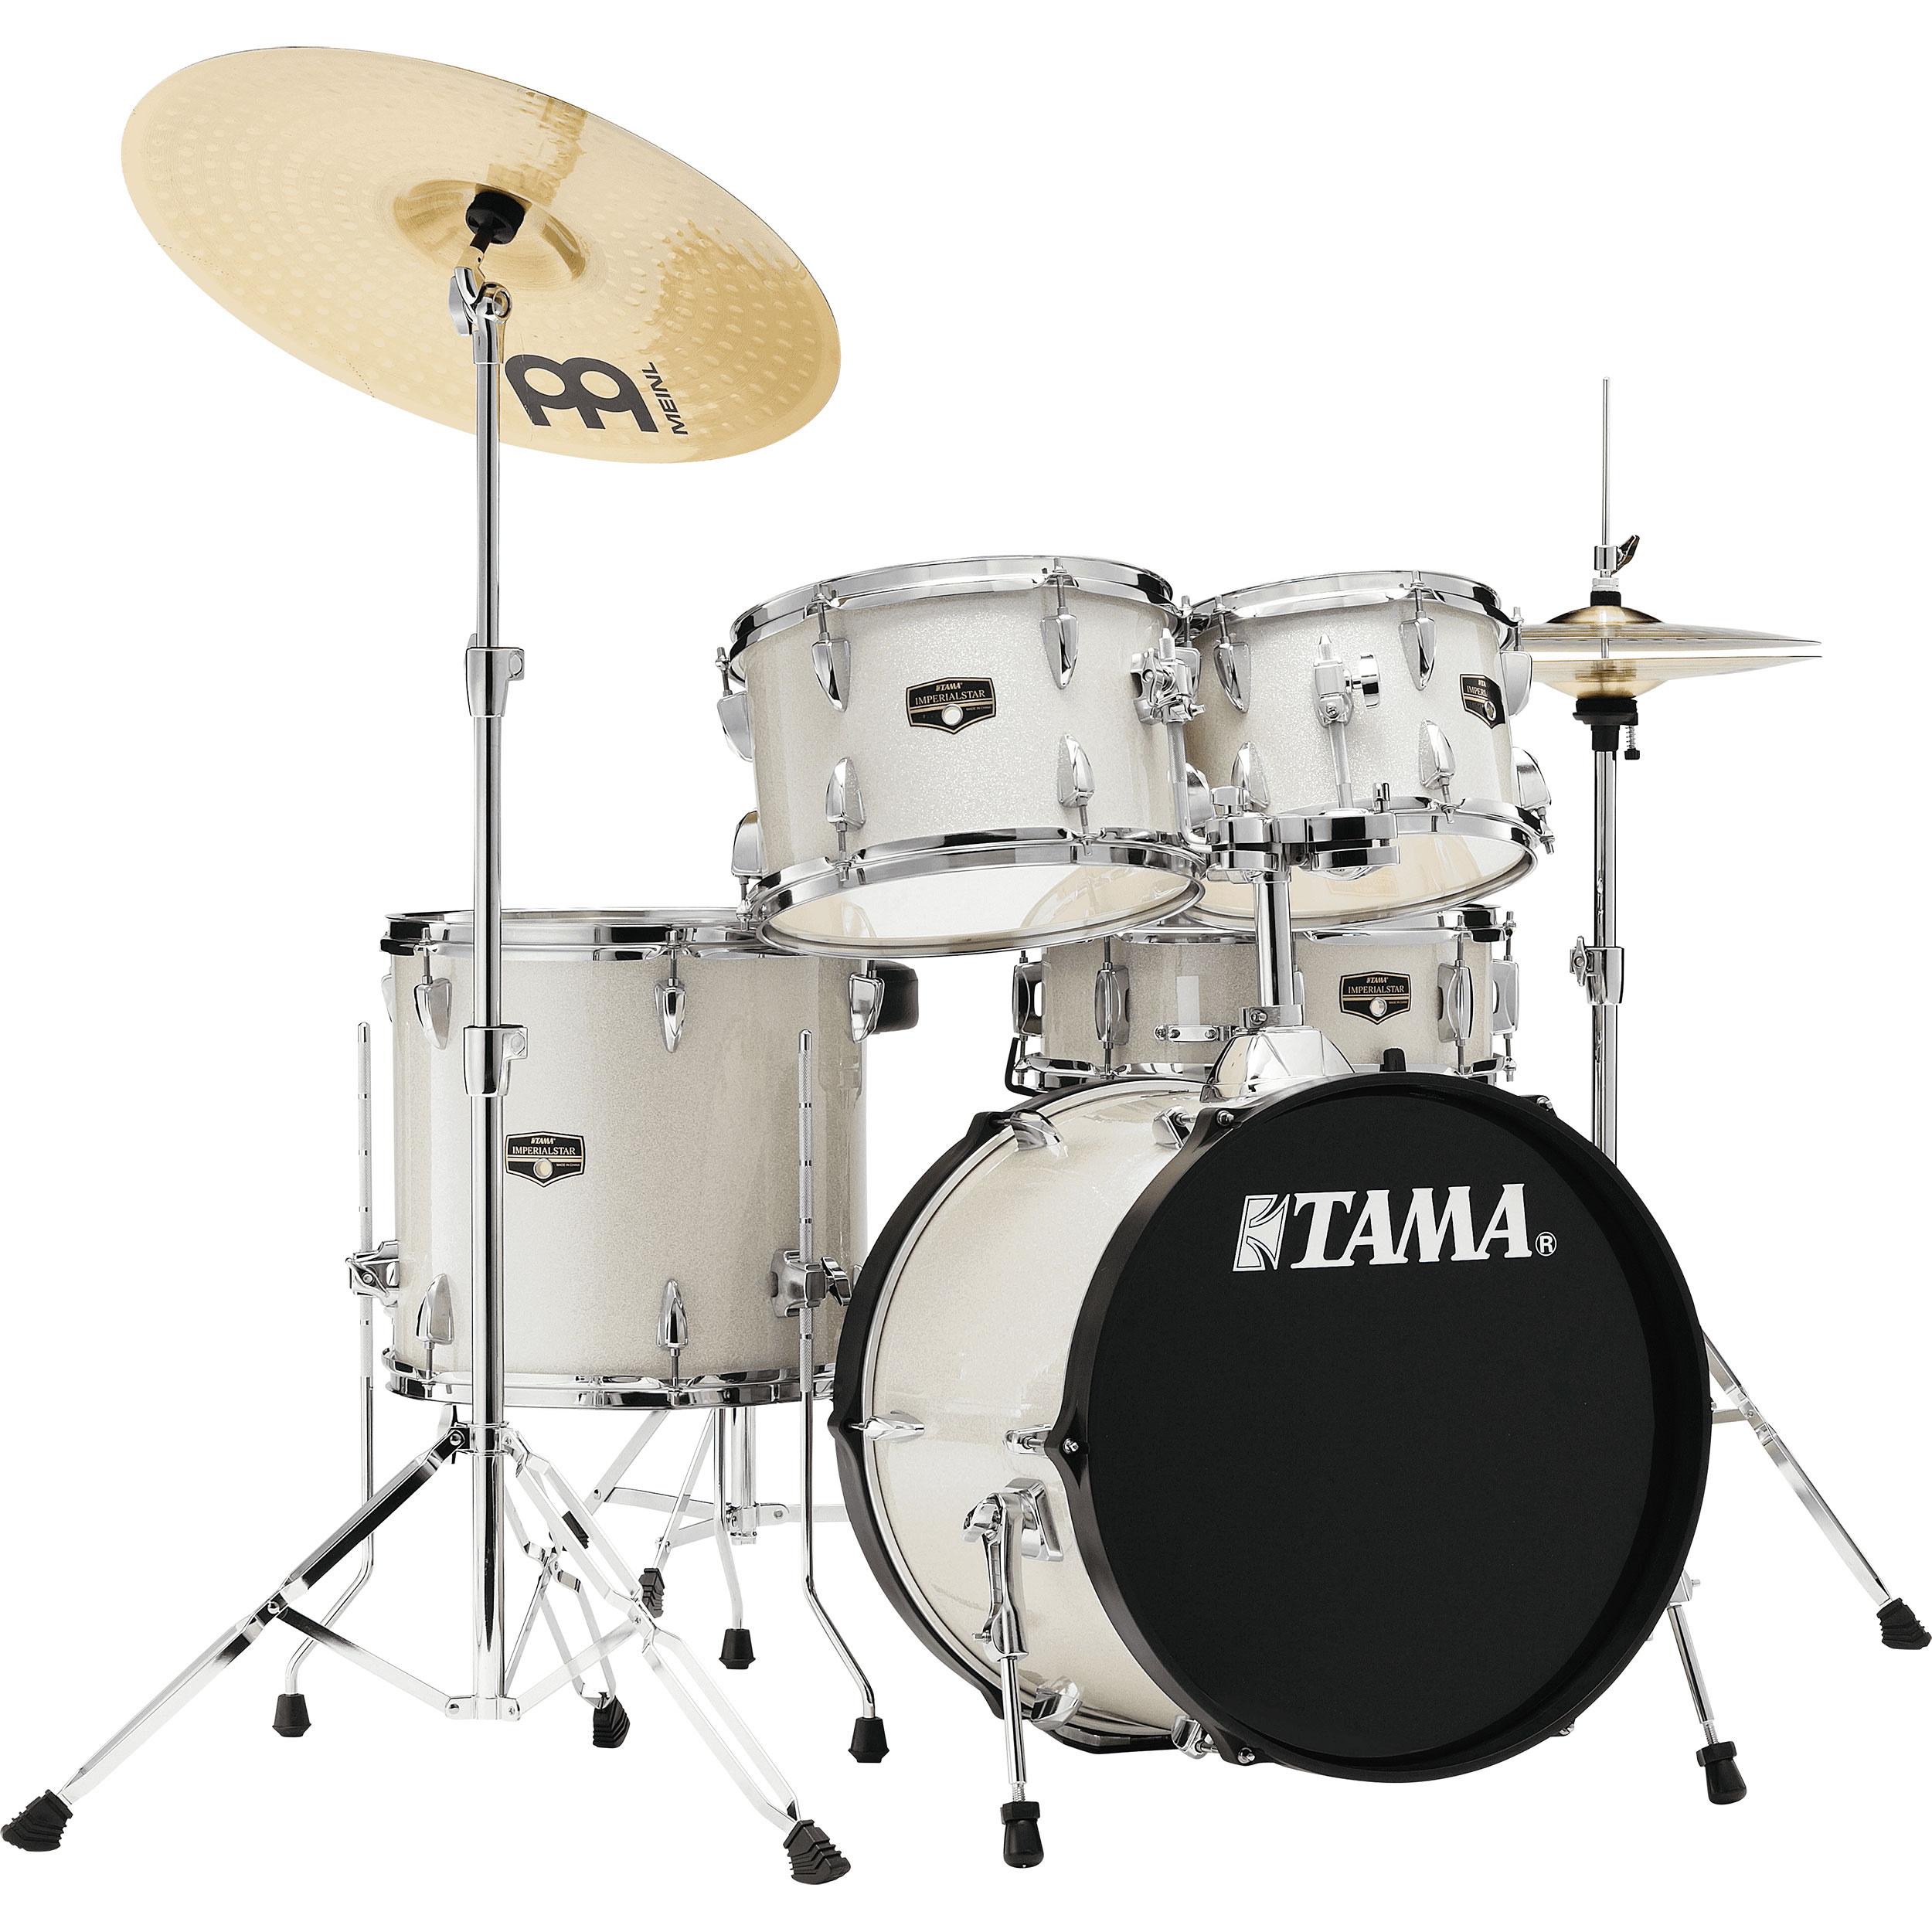 """Tama Imperialstar 5-Piece Drum Set with Hardware and Cymbals (18"""" Bass, 10/12/14"""" Toms, 14"""" Snare)"""